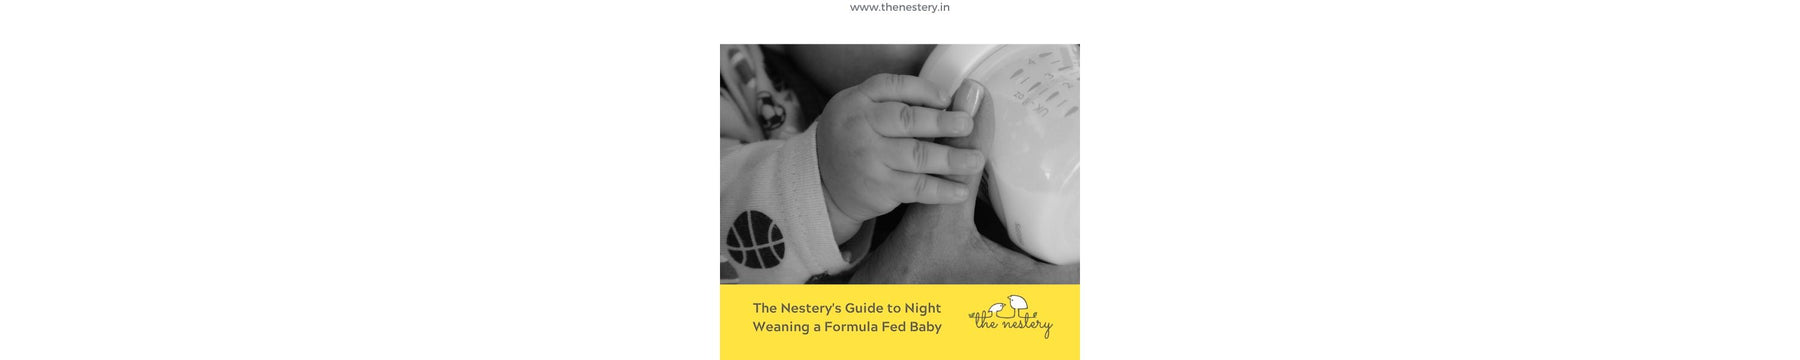 The Nestery's Guide to Night Weaning a Formula Fed Baby